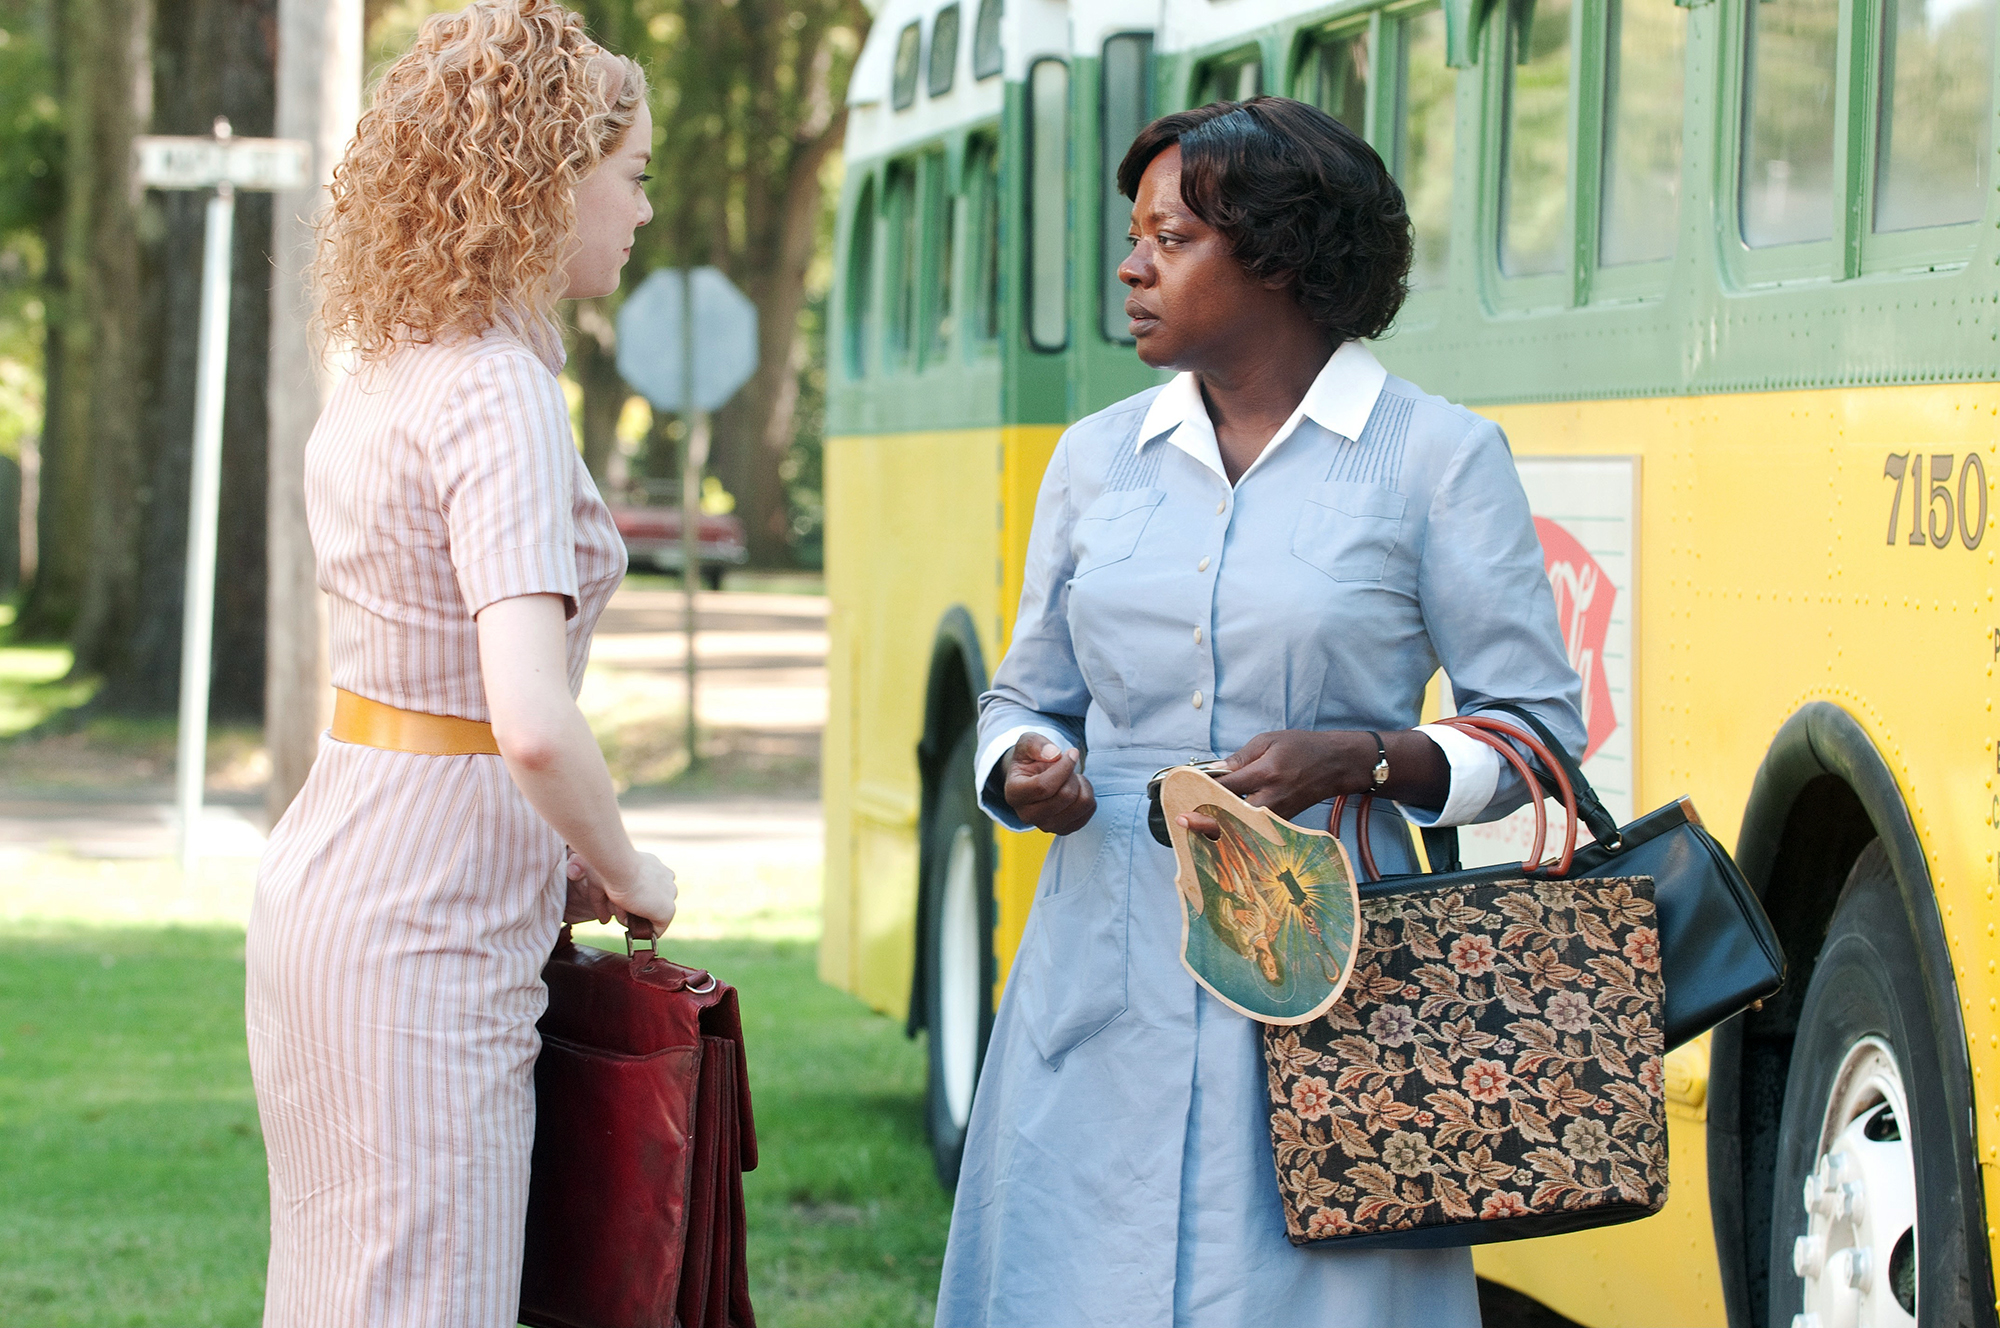 A scene from 'The Help'